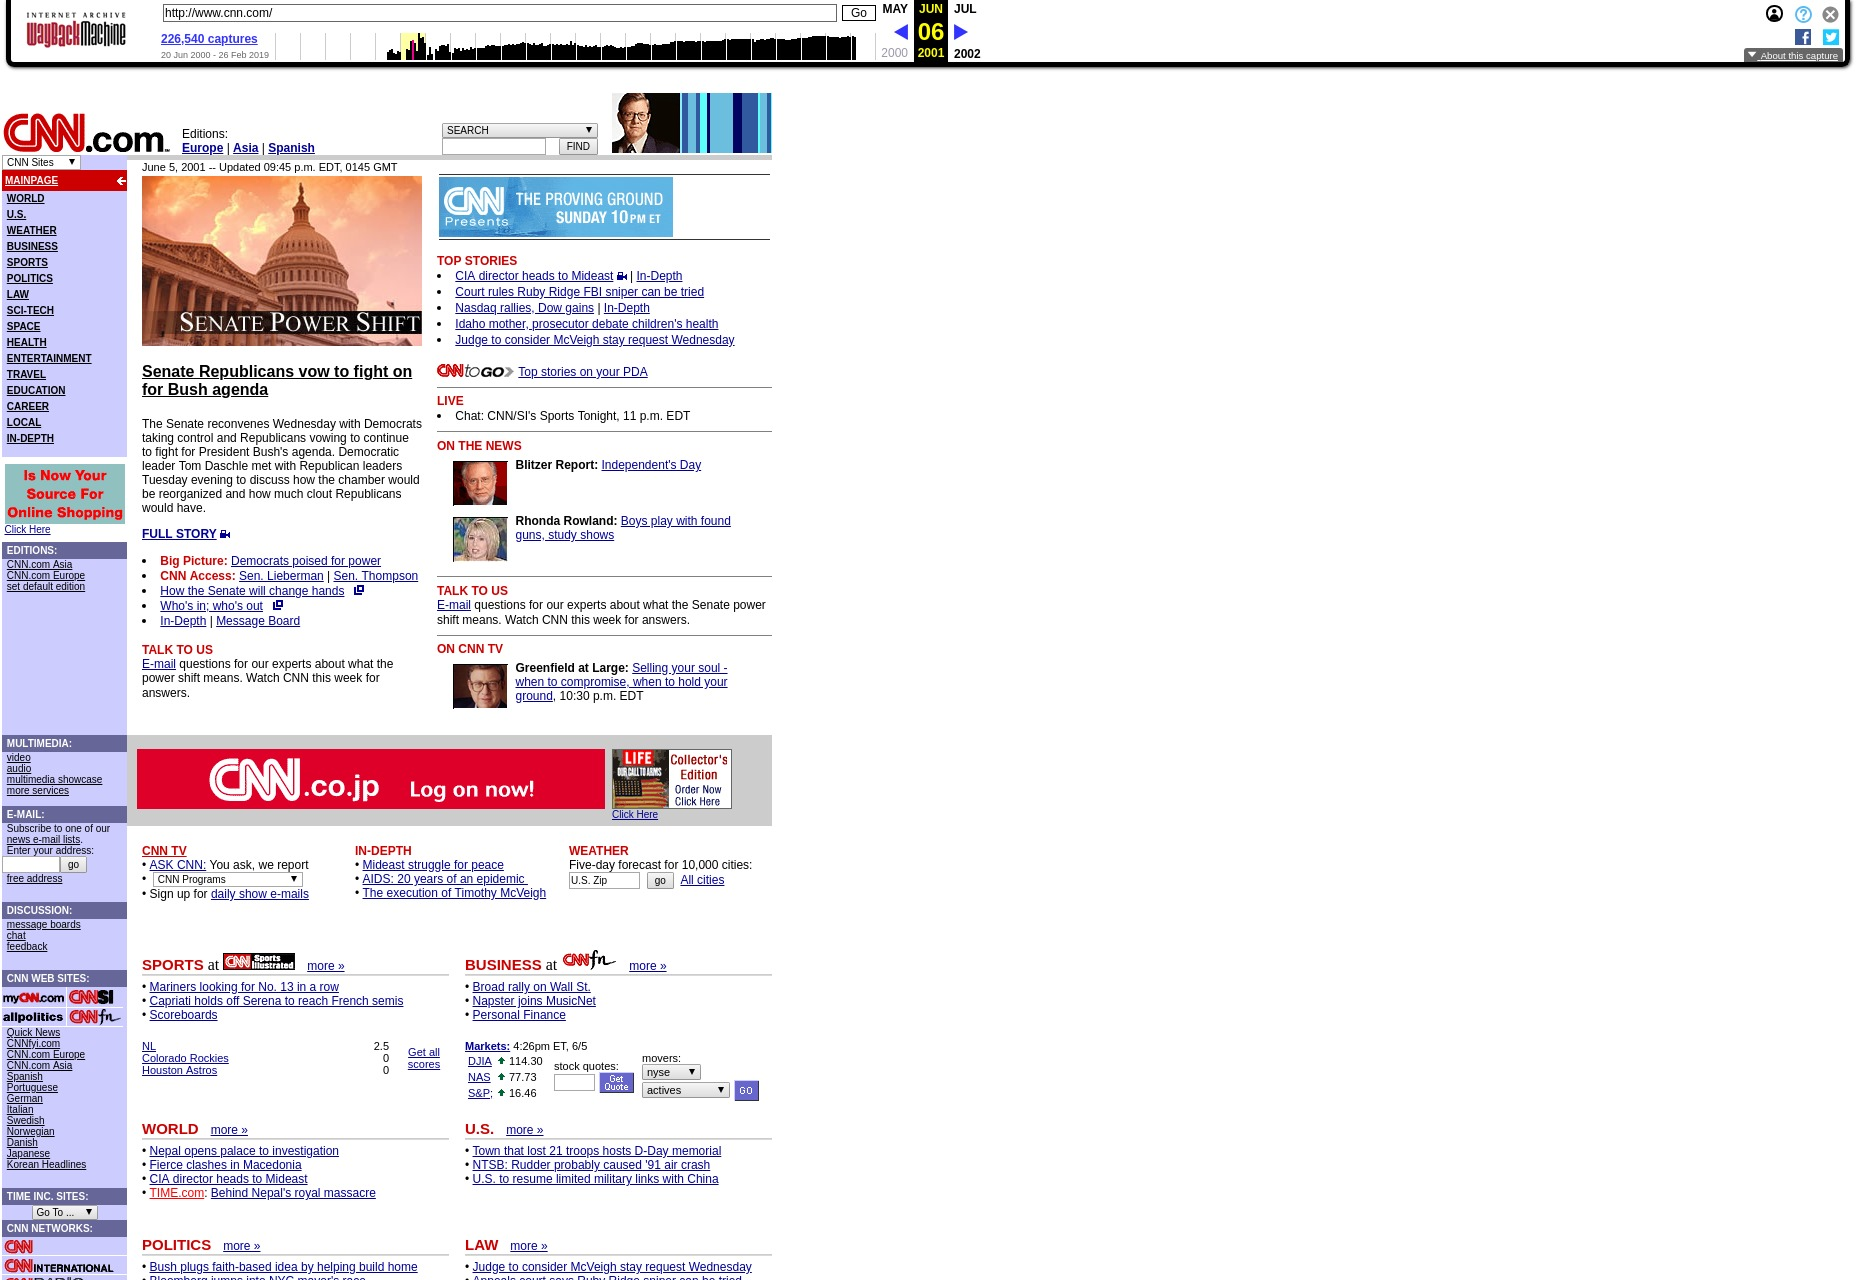 cnn's homepage back in the day